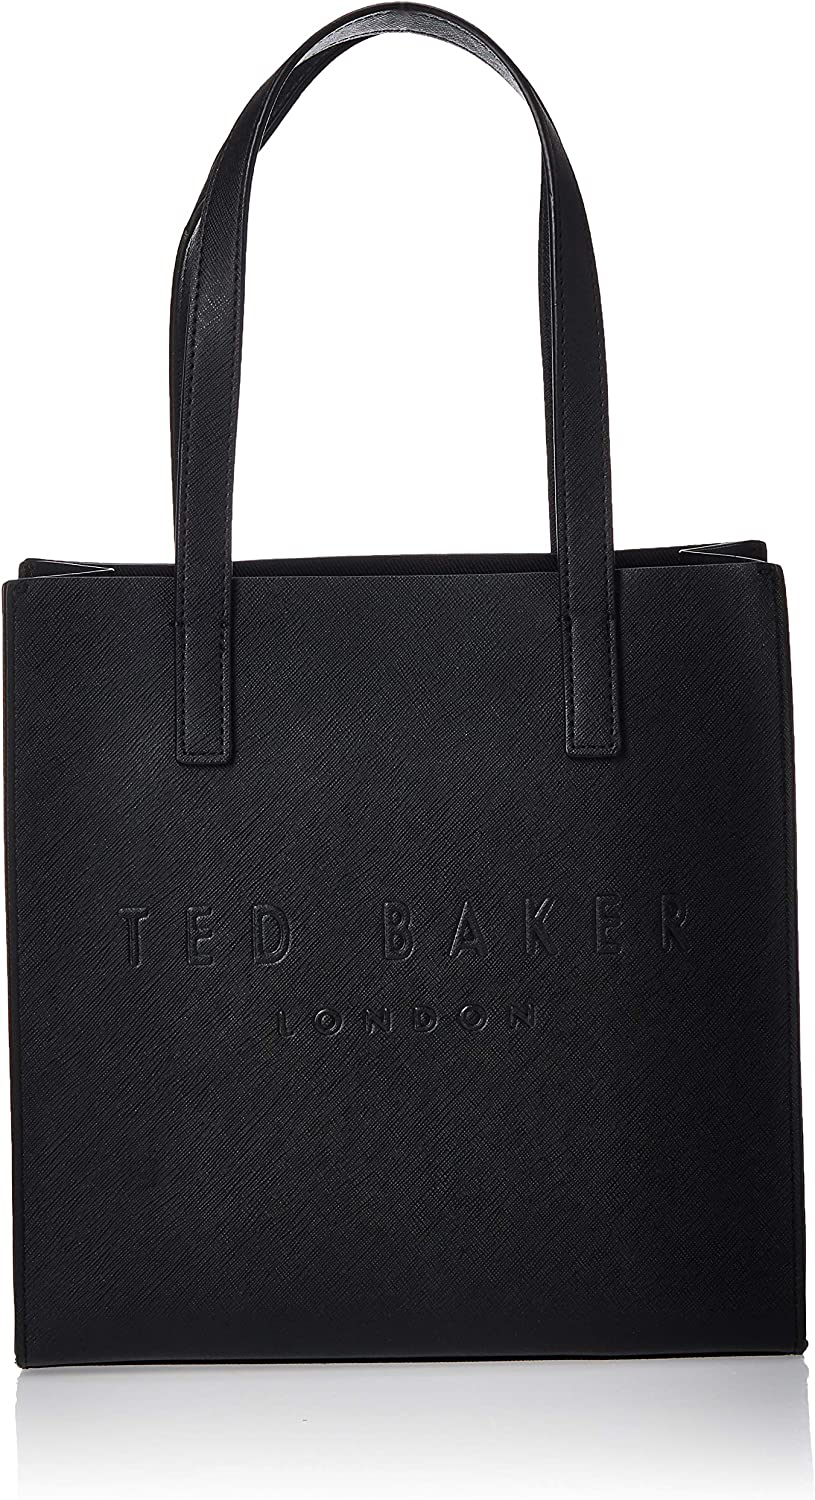 TED BAKER LONDON Women's Seacon Icon Bag, One Size